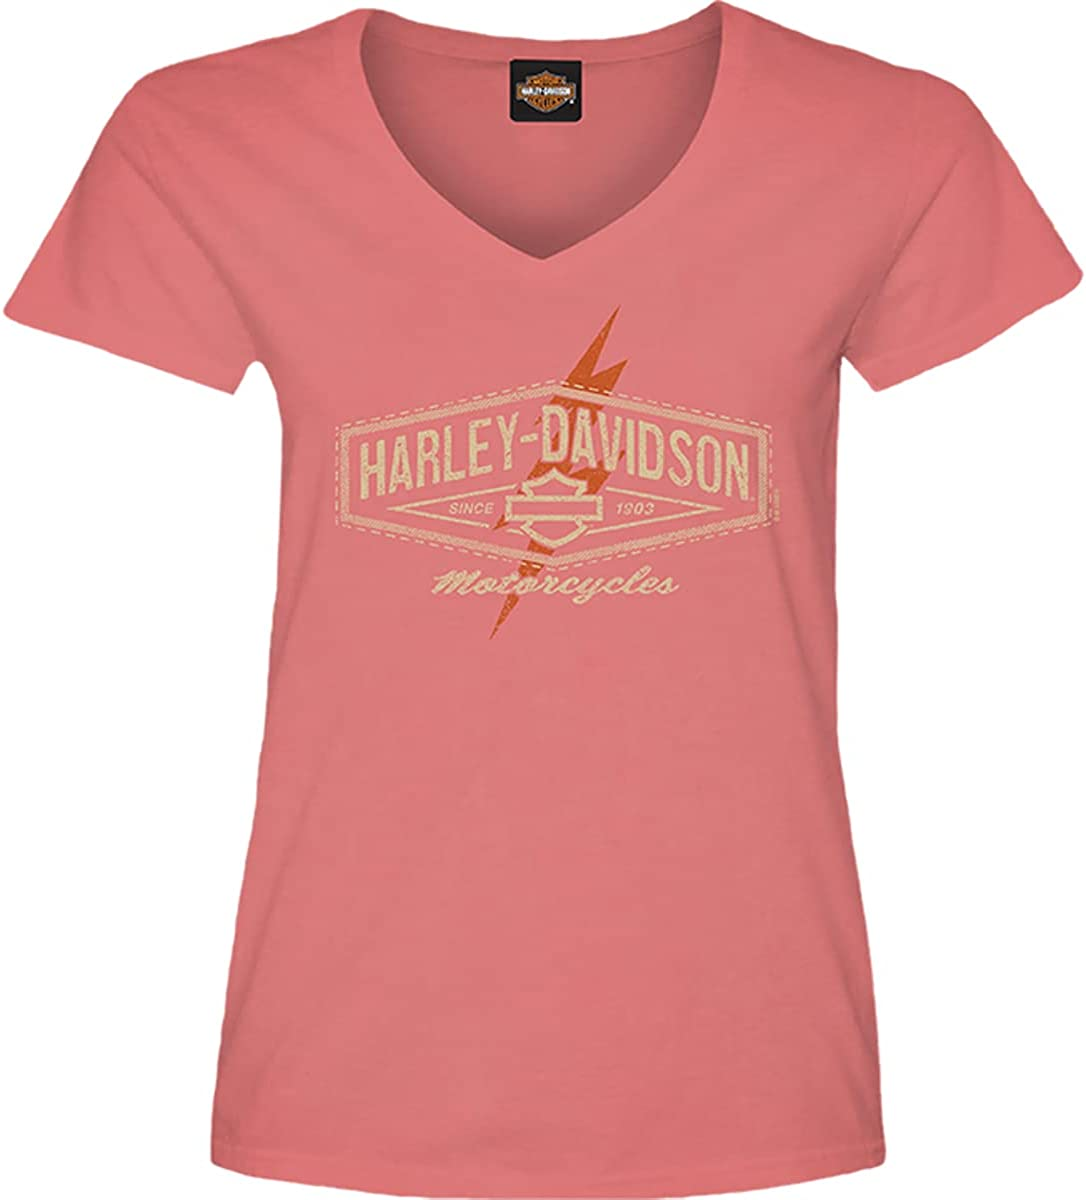 Harley-Davidson Military - Women's Coral Graphic V-Neck T-Shirt - Camp Leatherneck   Circuit